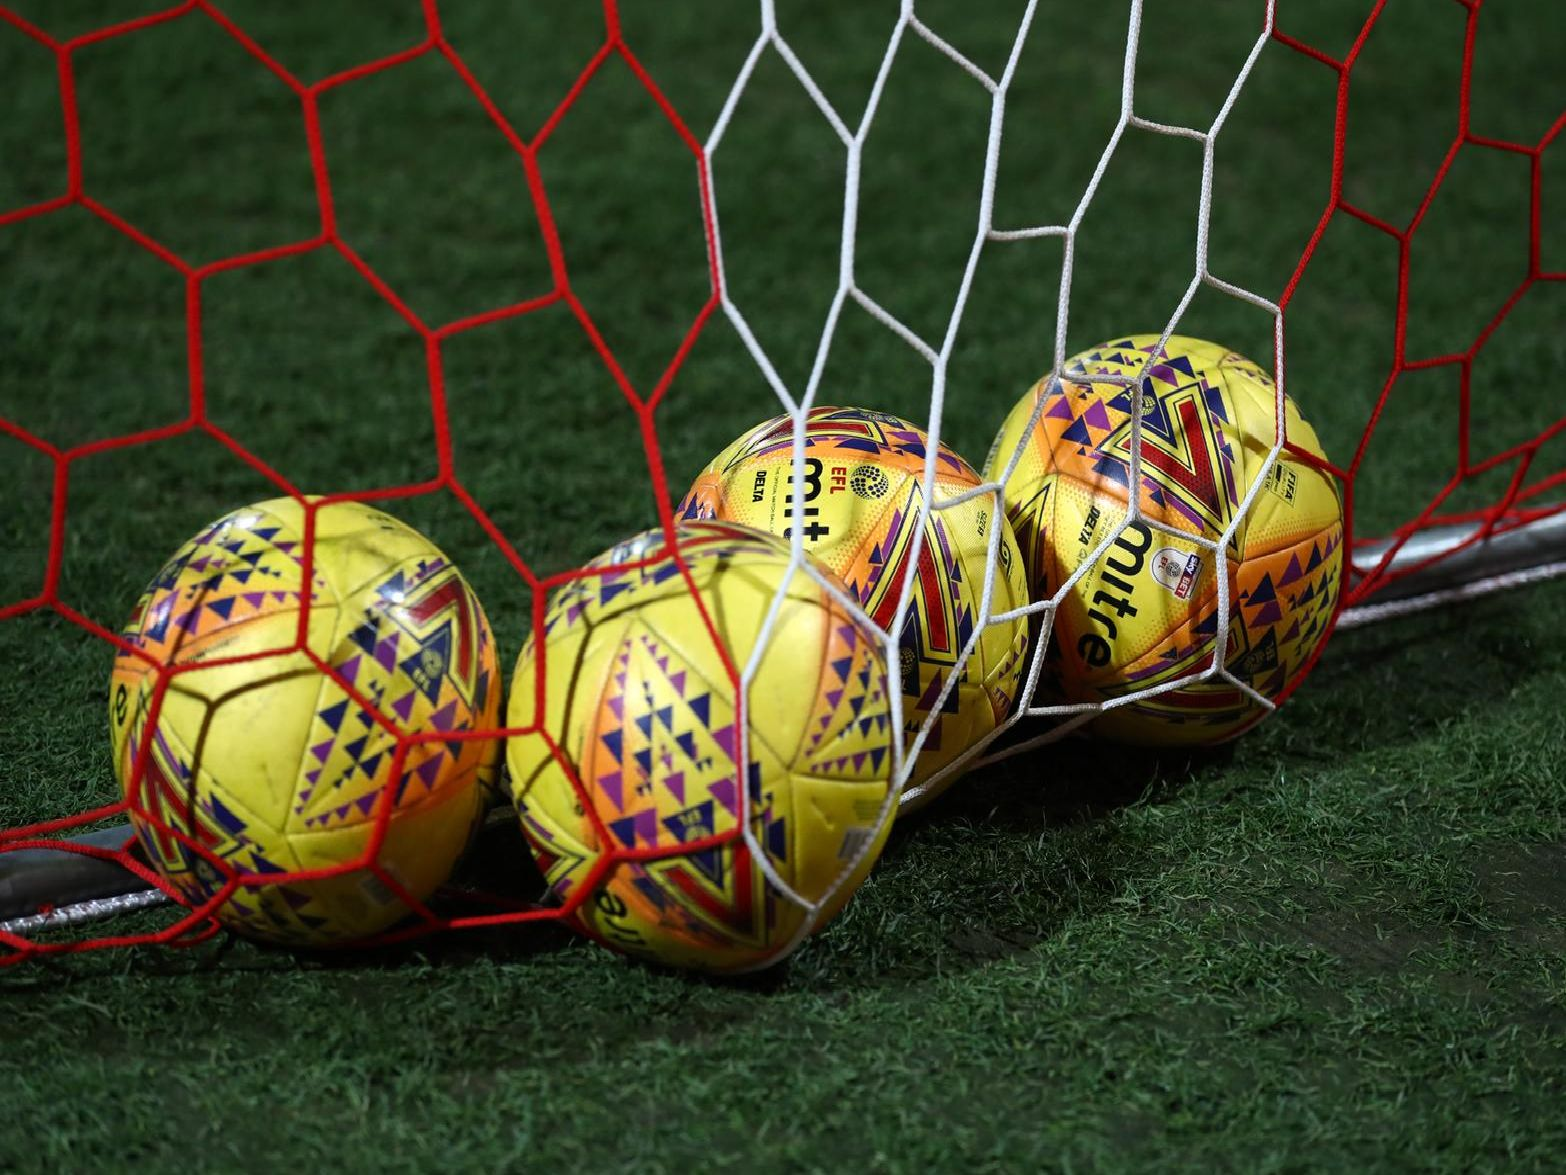 EFL Mitre match balls lie in the goal (Photo by Catherine Ivill/Getty Images)